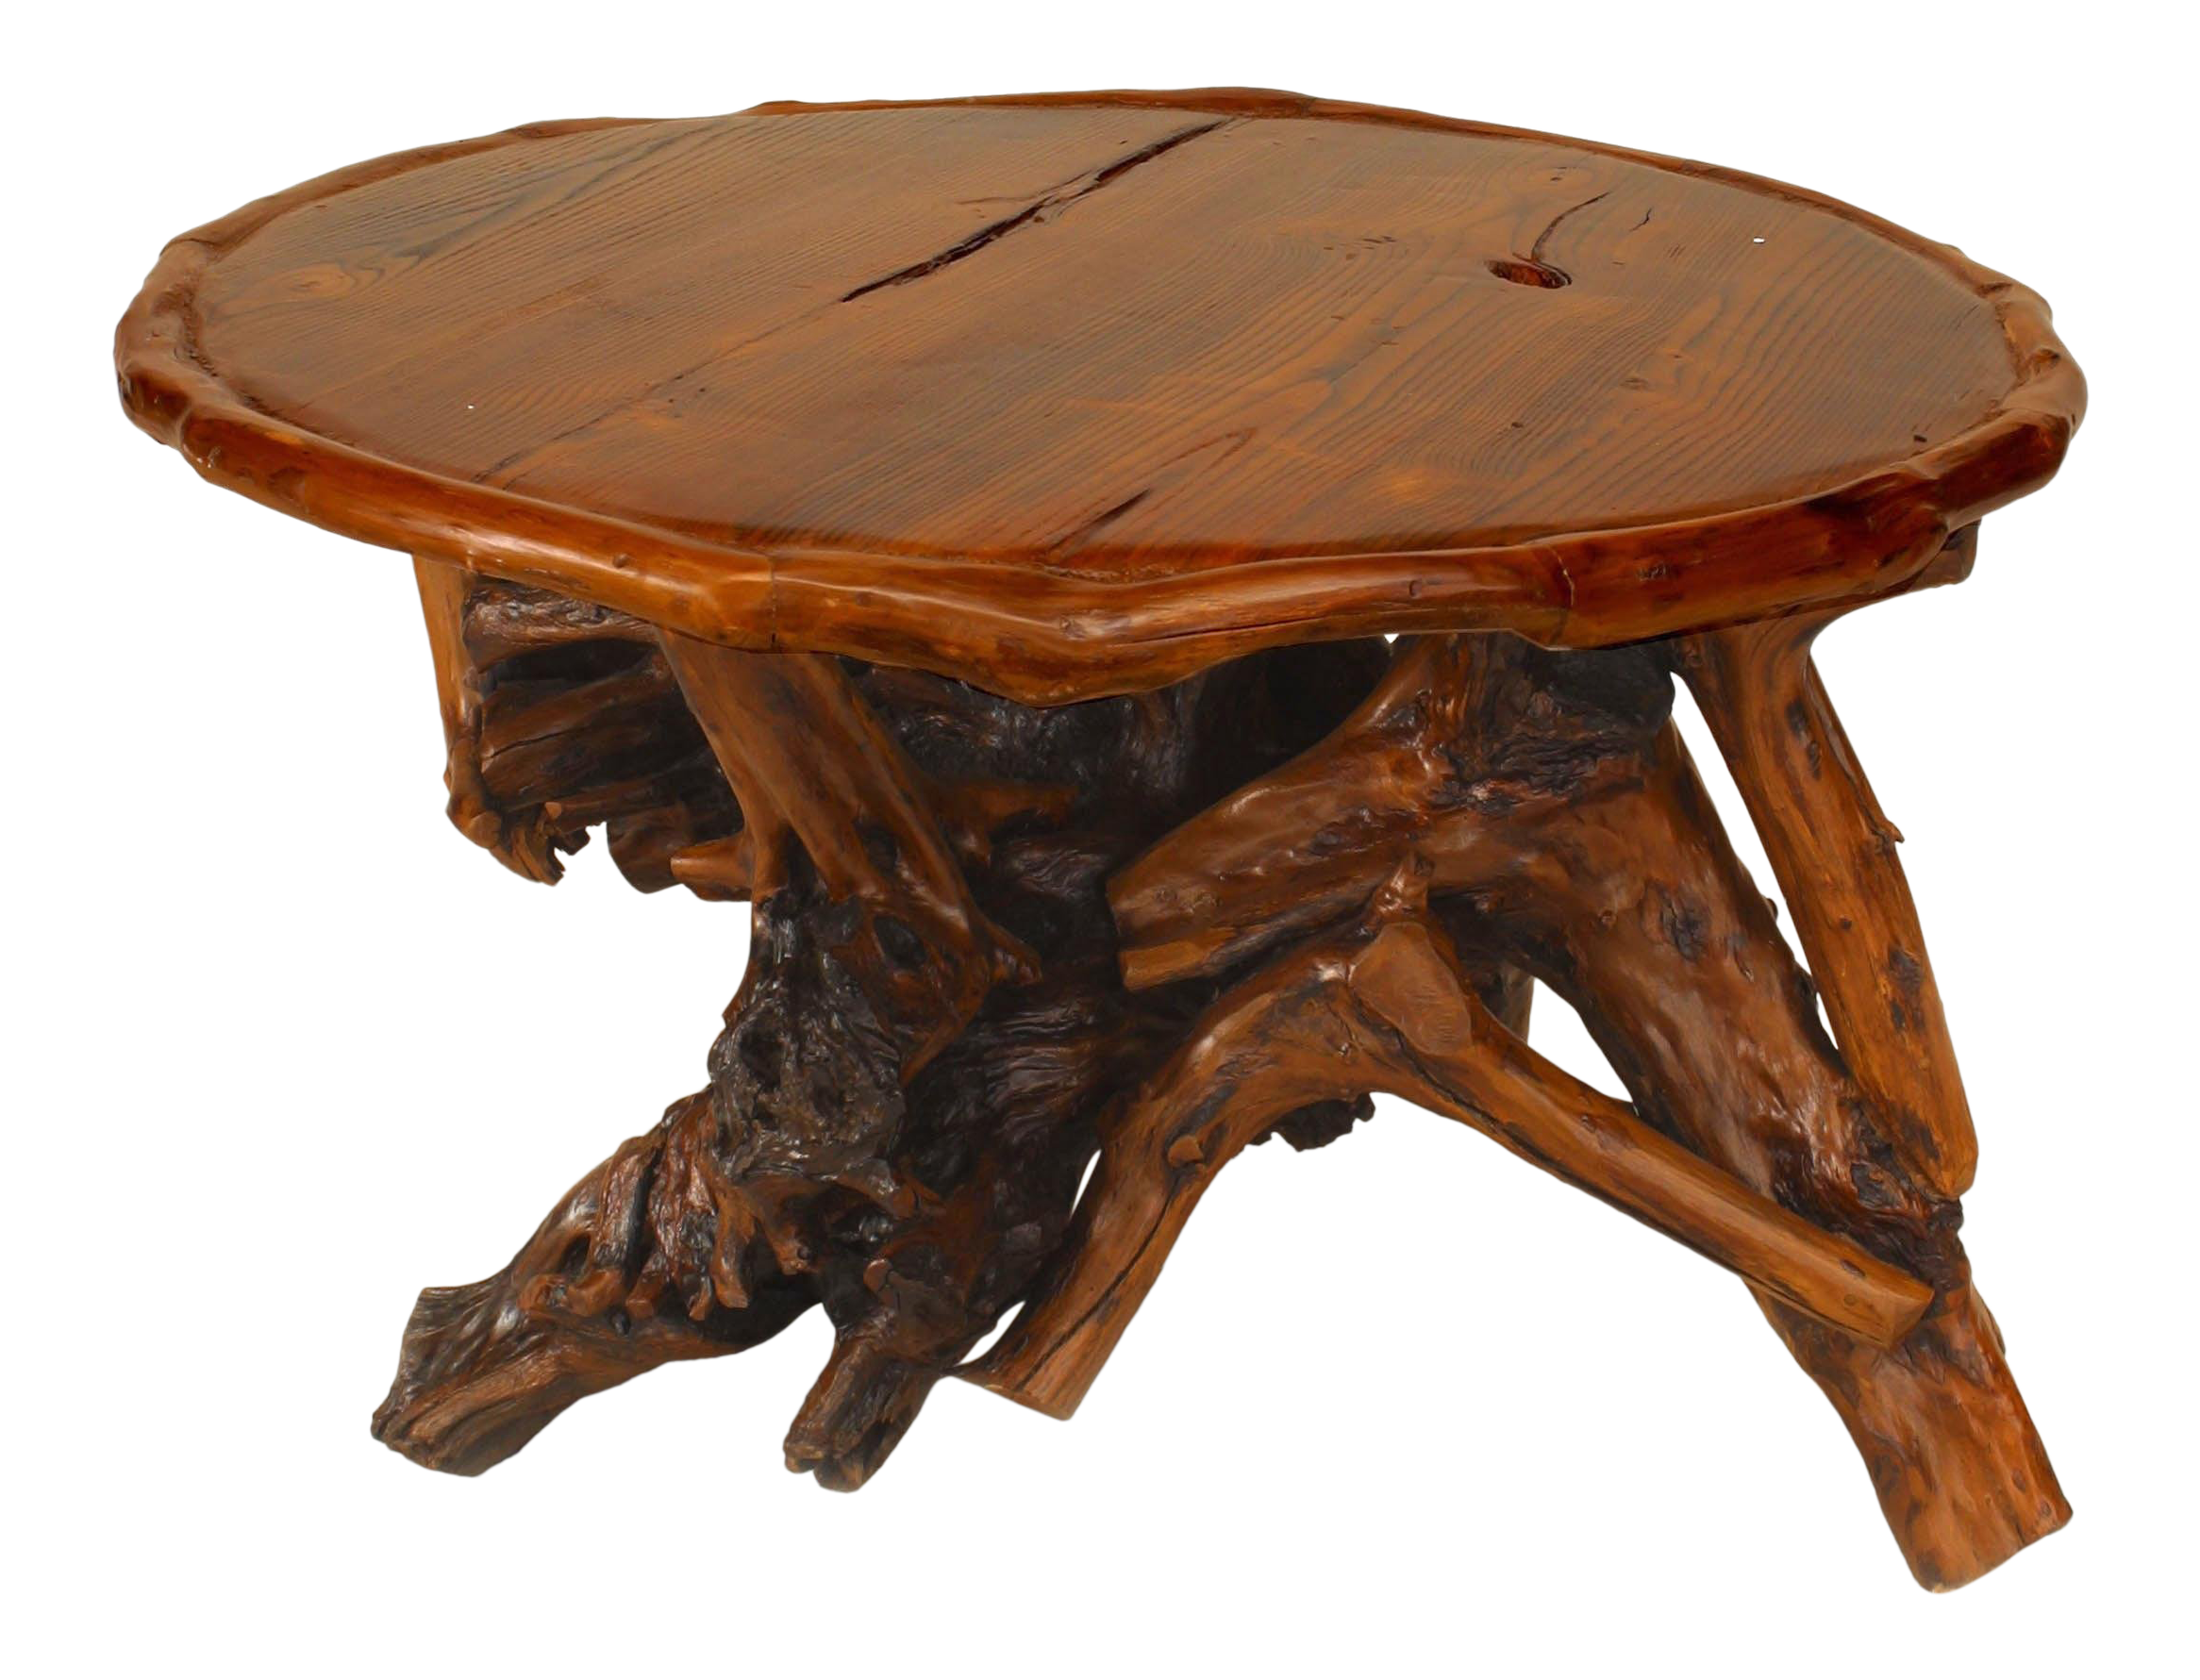 Adirondack Style Coffee Tables With Root Bases